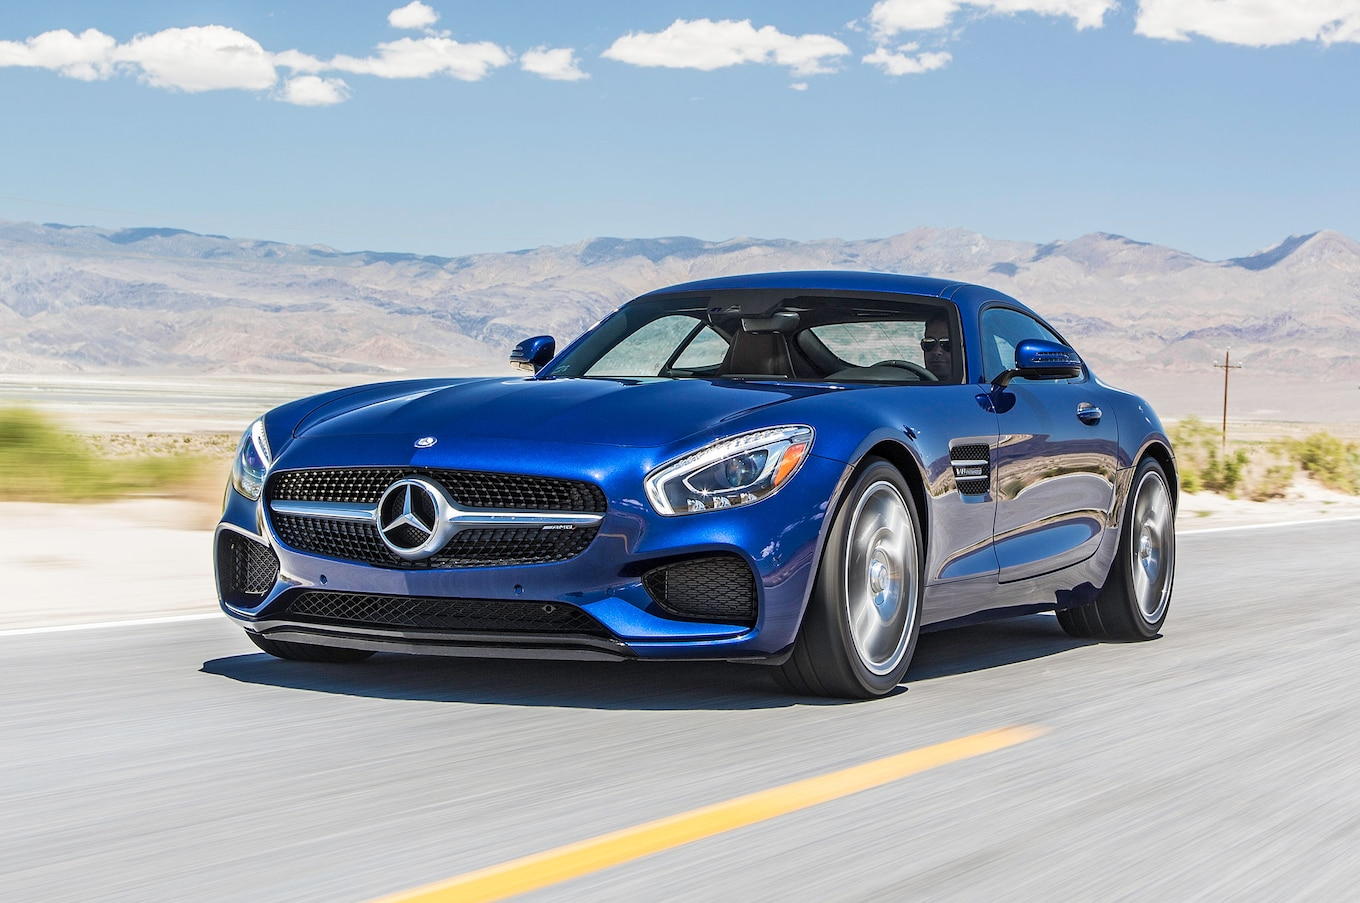 2016 Mercedesamg Gt S Review  First Test  Motor Trend